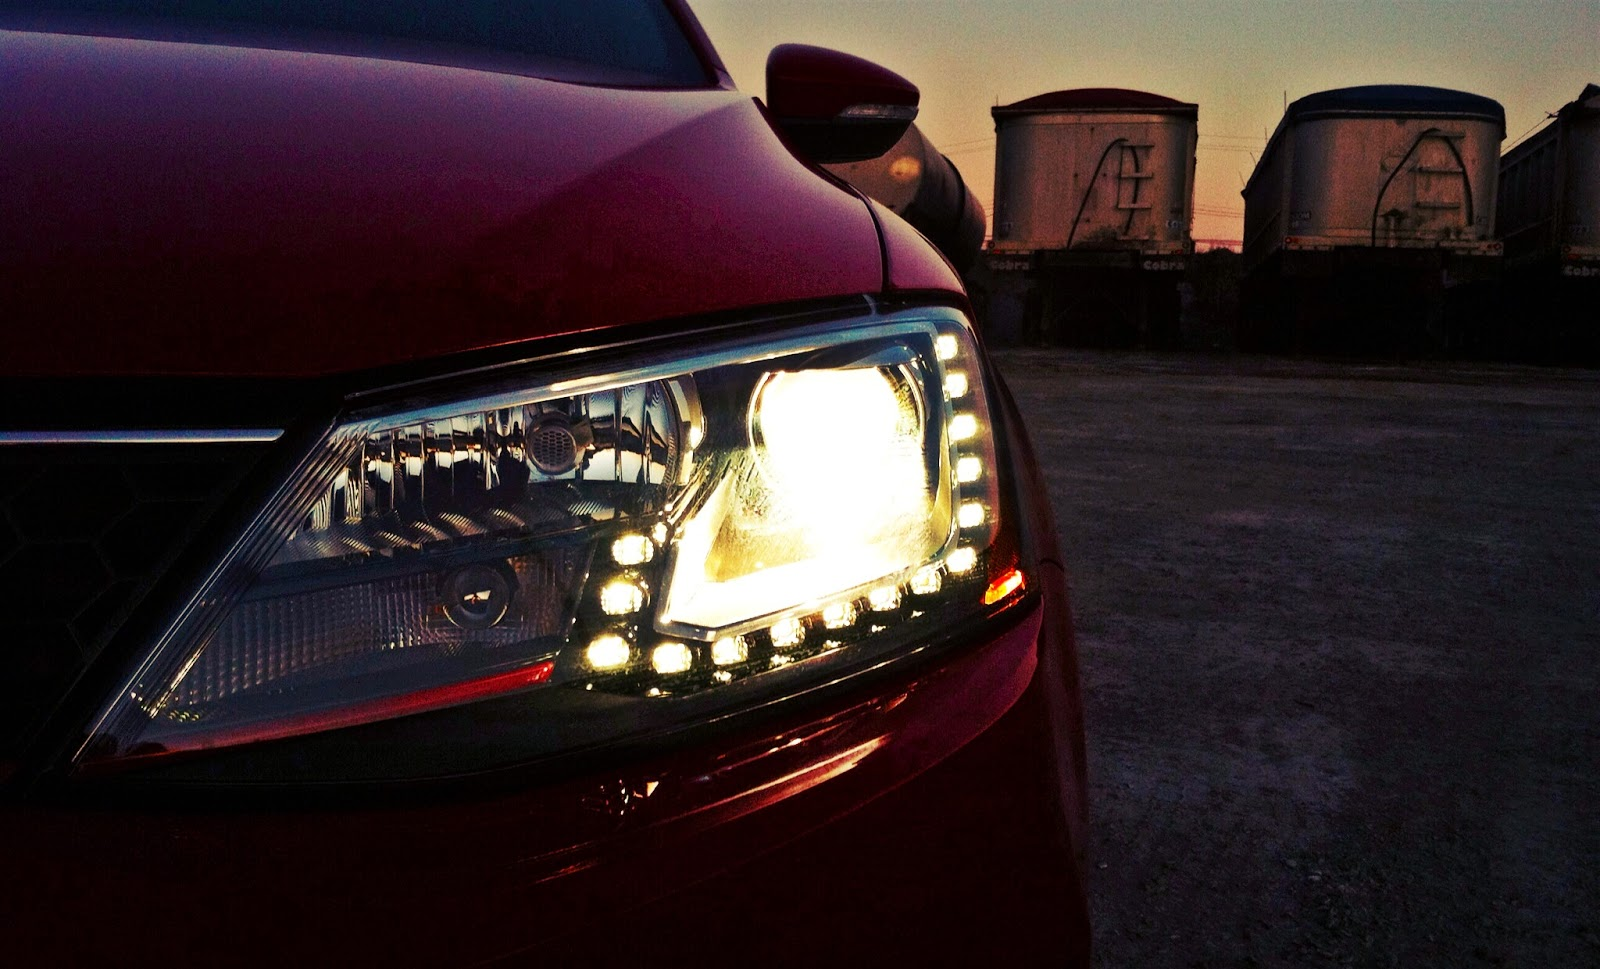 2014 Volkswagen Jetta GLI headlight LED